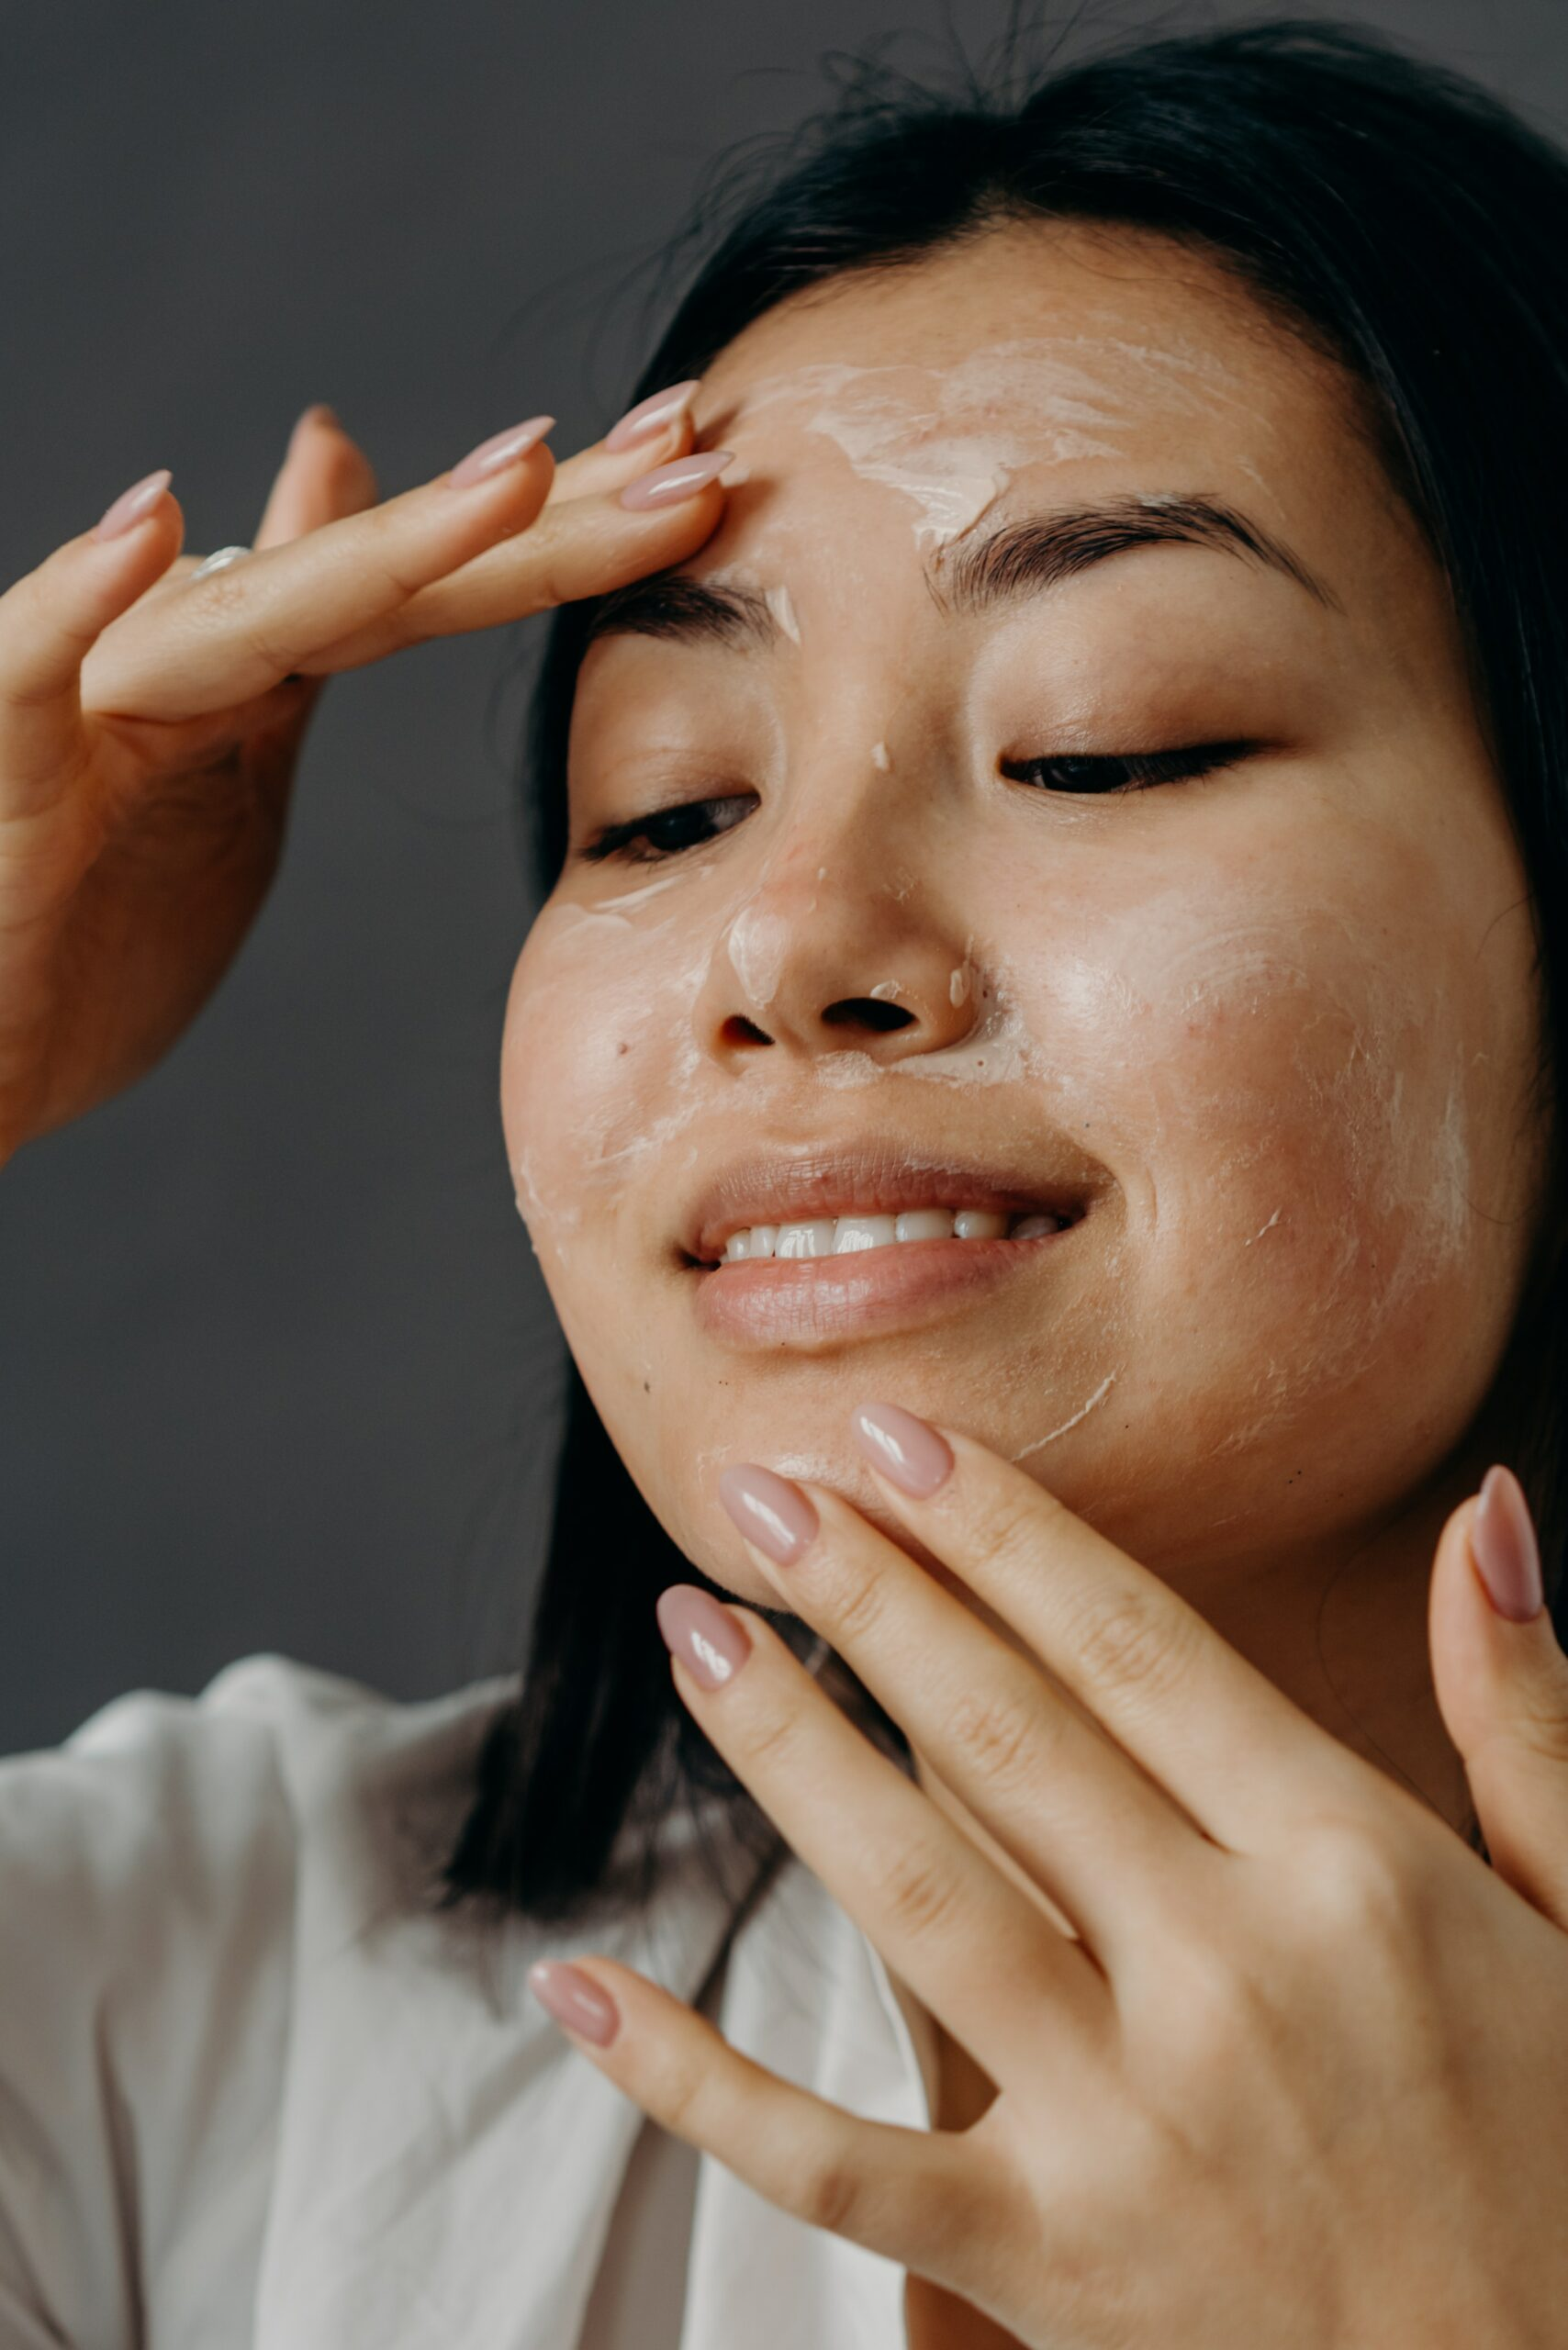 Exfoliate and wash your face frequently to treta fungal acne